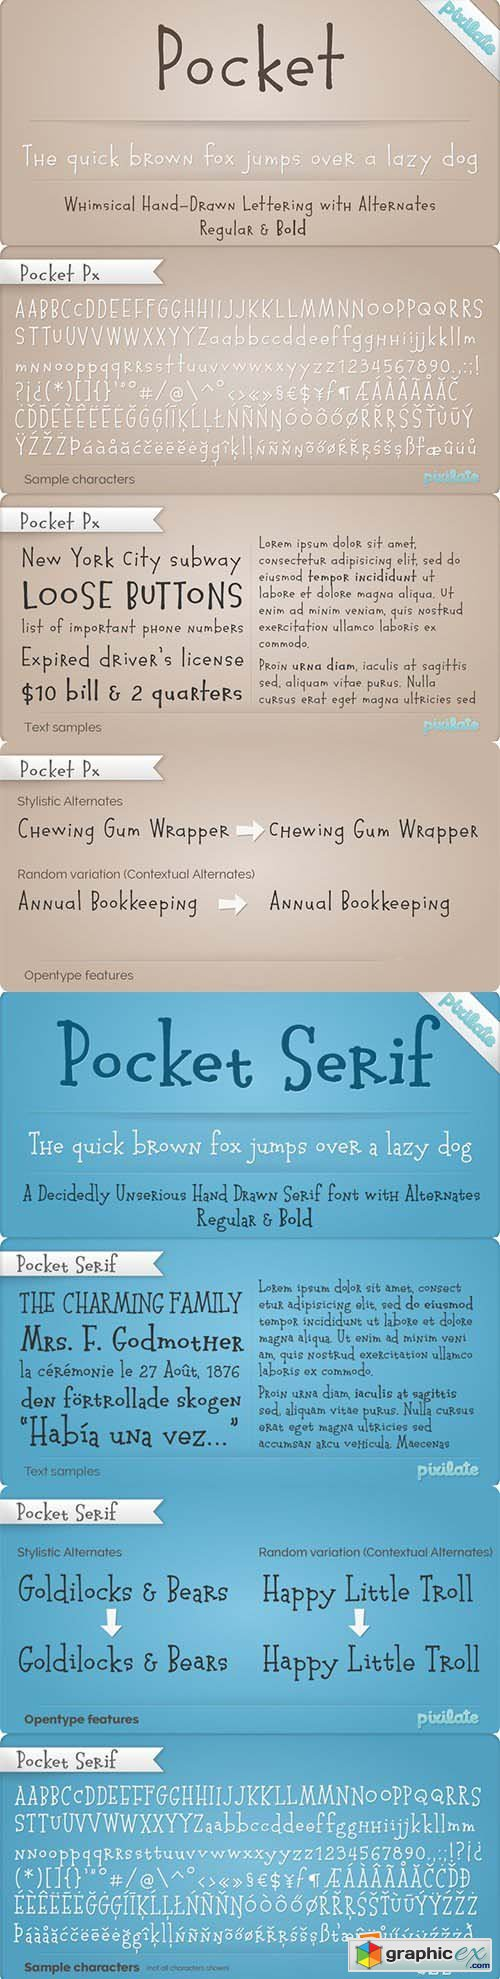 Pocket Px and Pocket Px Serif Font Family - 4 Font $72